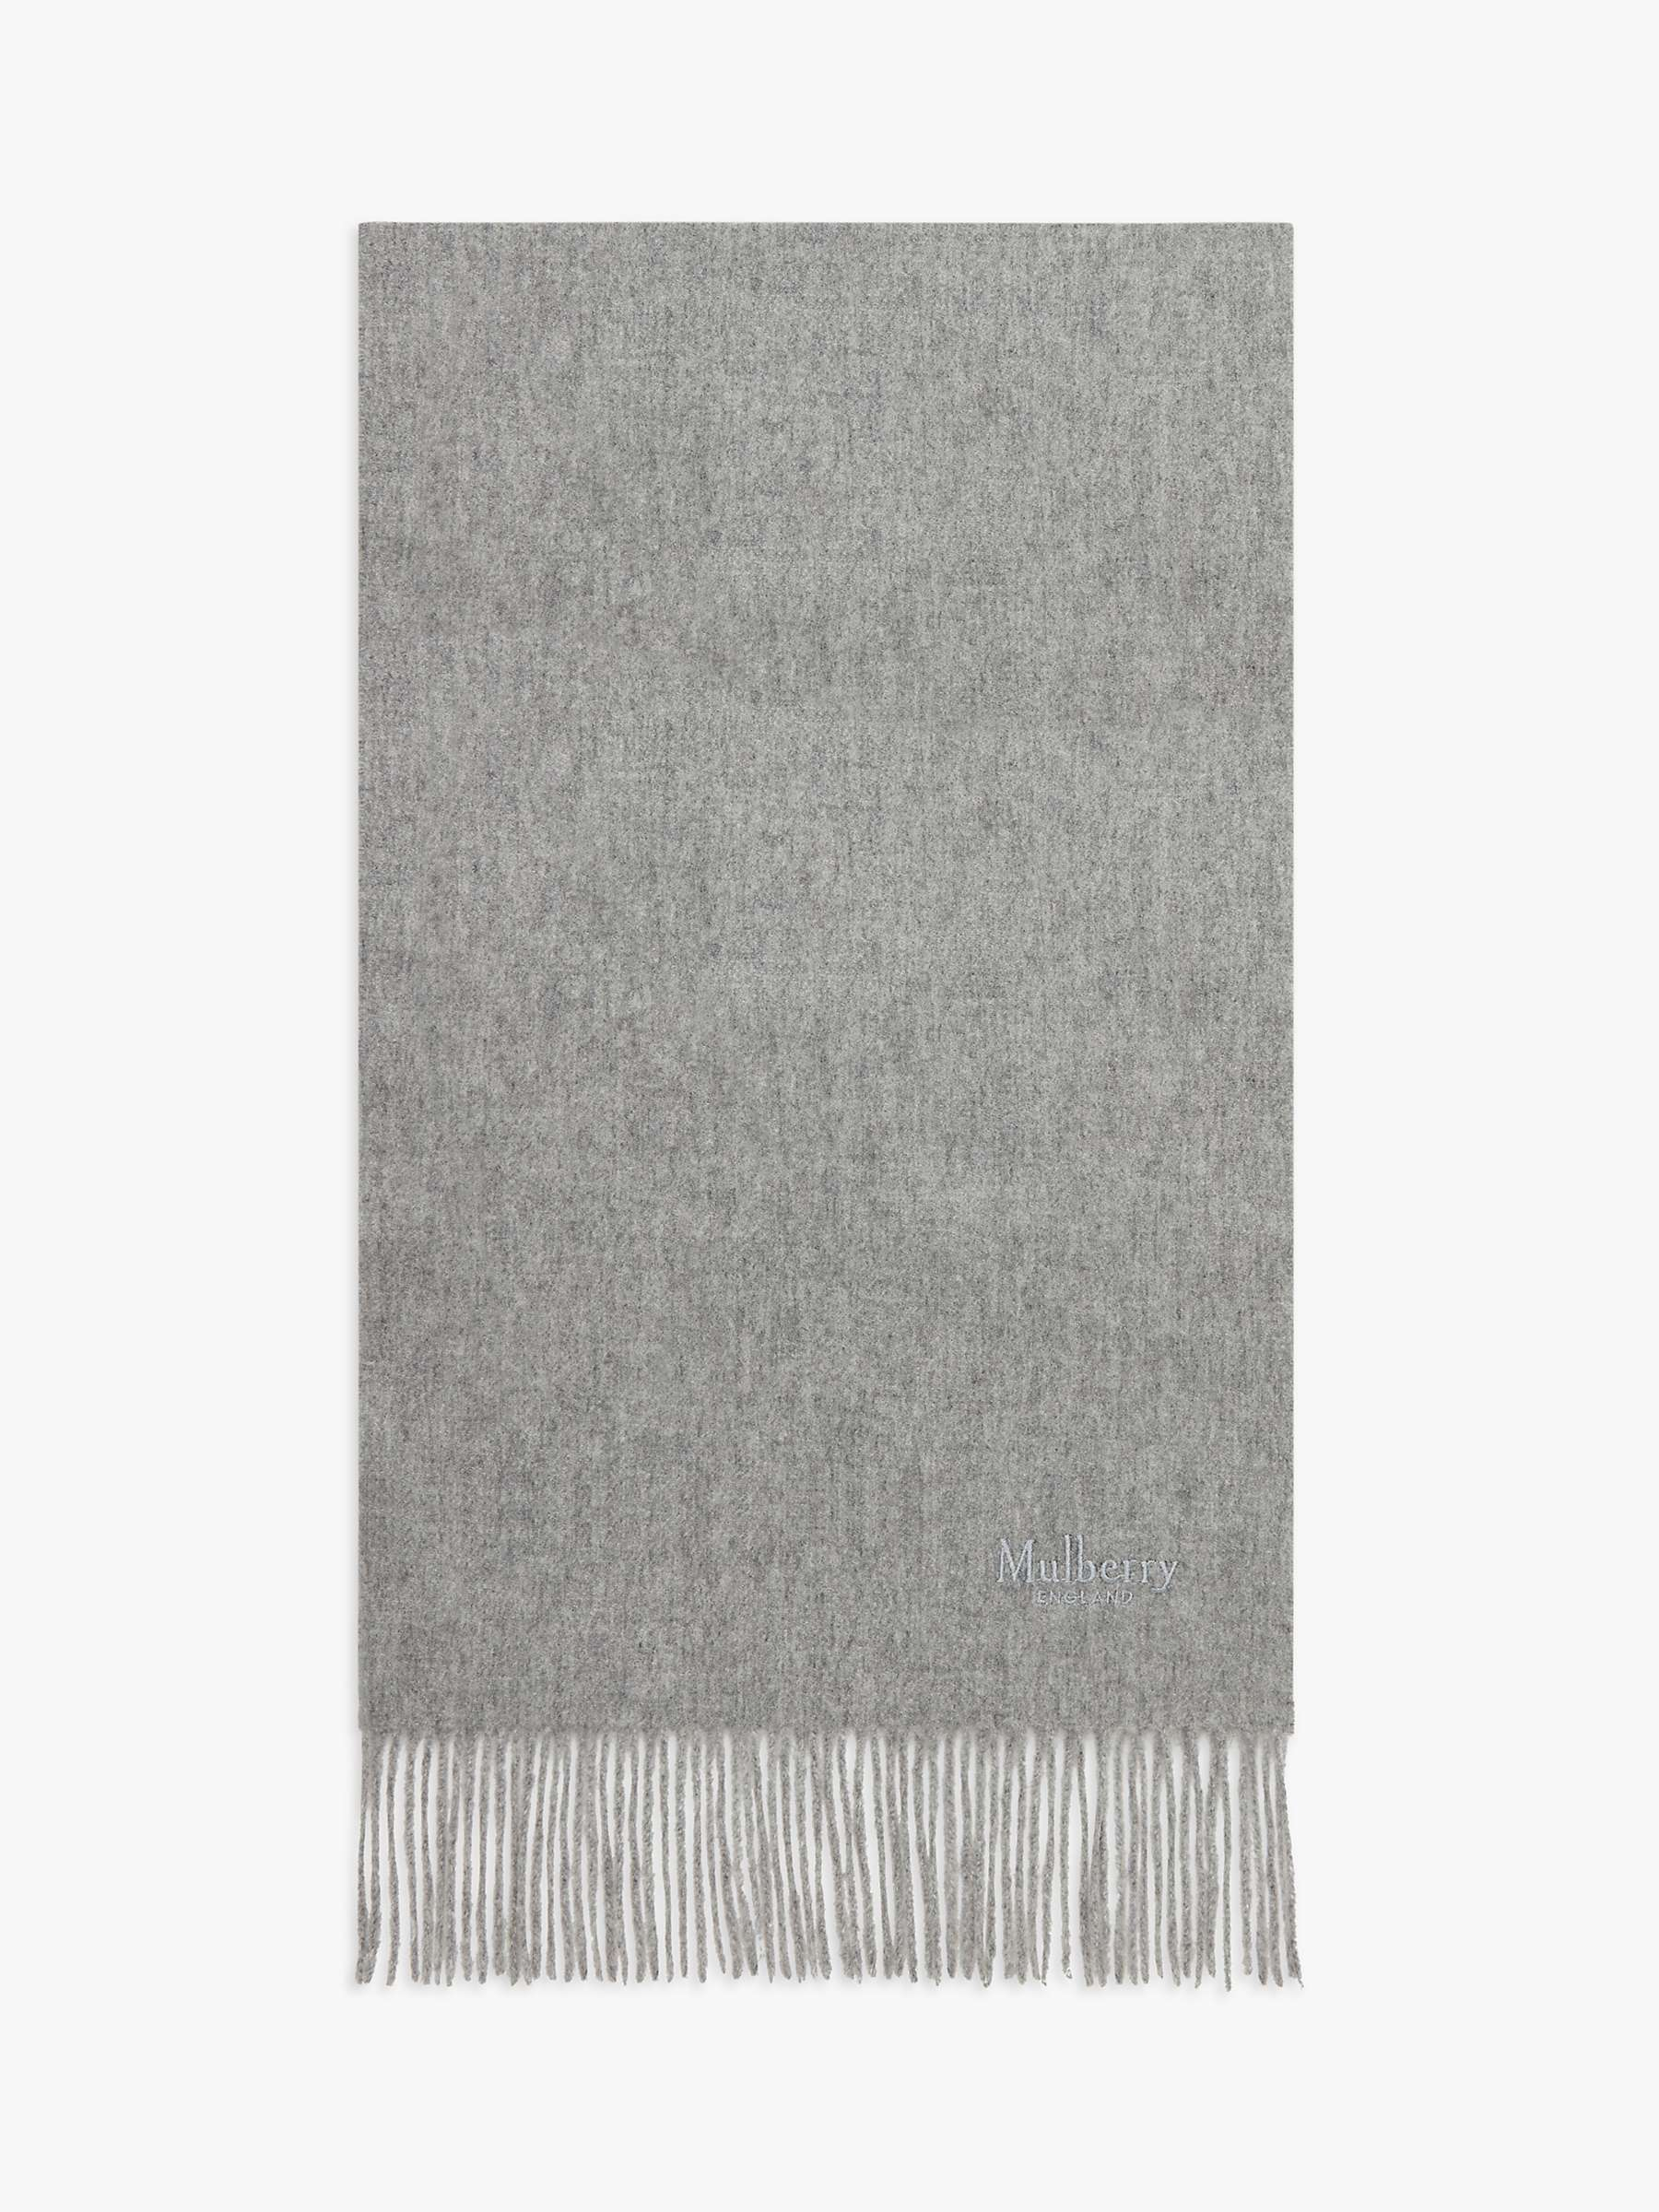 Mulberry Small Solid Lambswool Scarf, Light Grey Melange by Mulberry